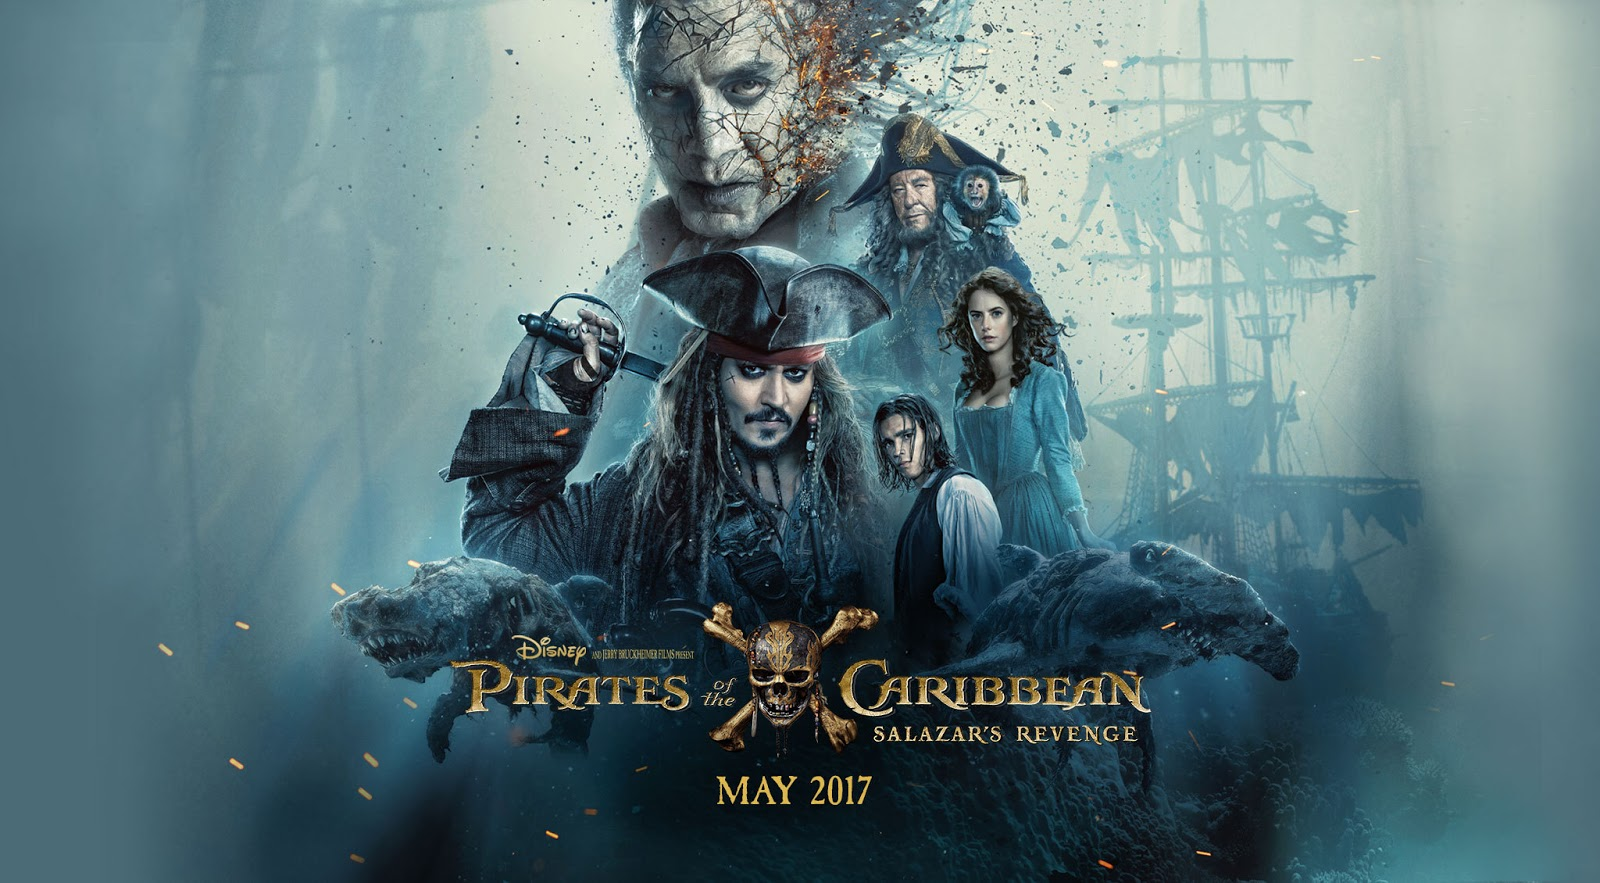 pirates of the caribbean new movie free download